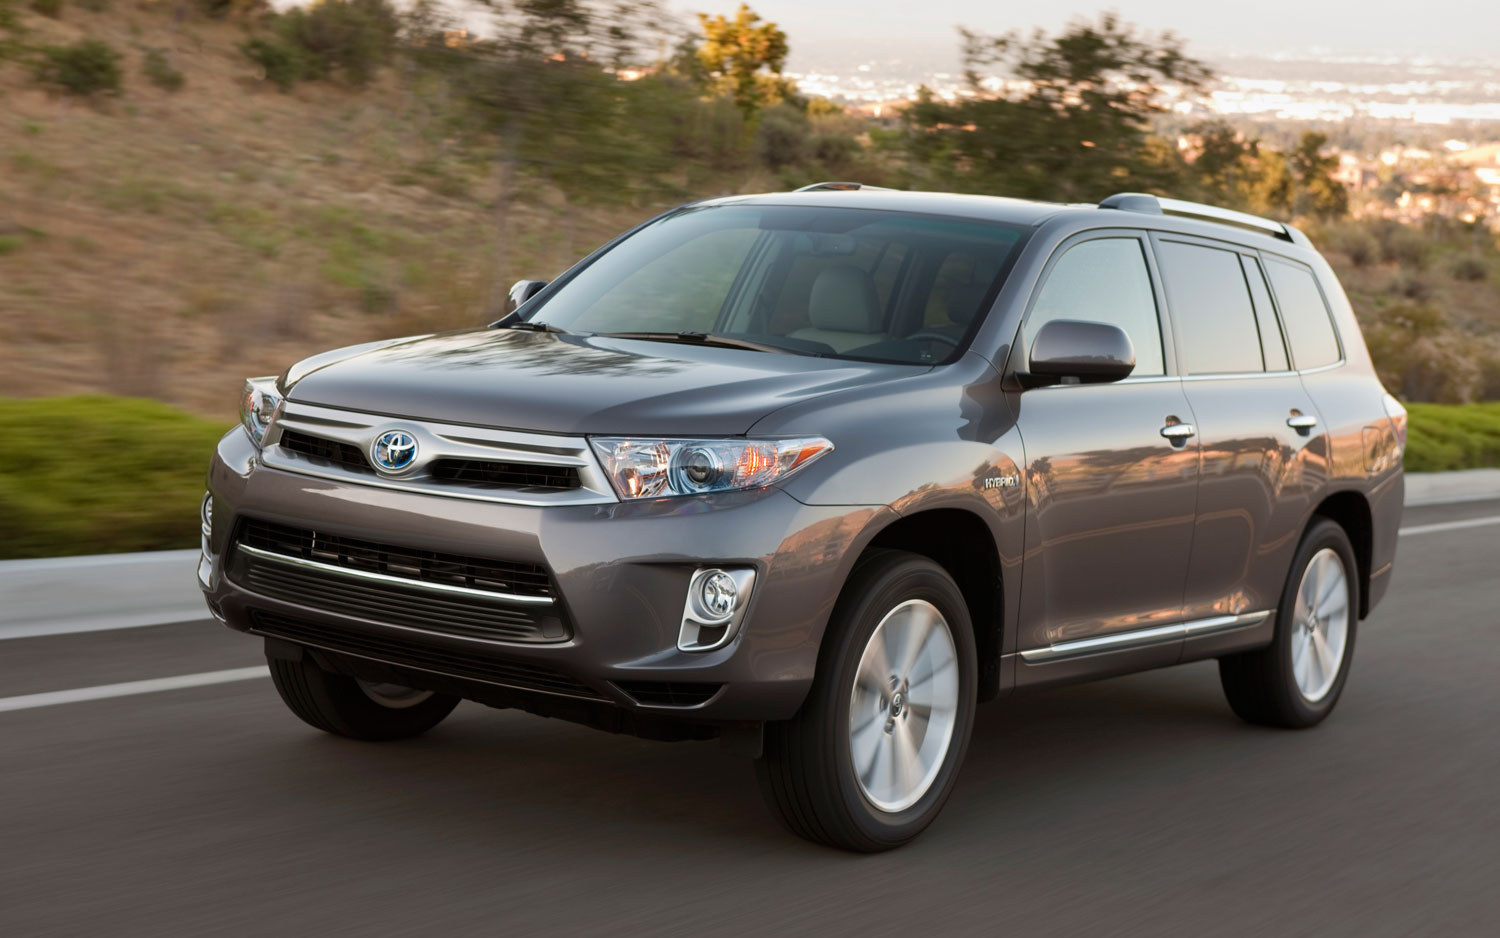 Toyota Highlander 3.5 2013 photo - 1